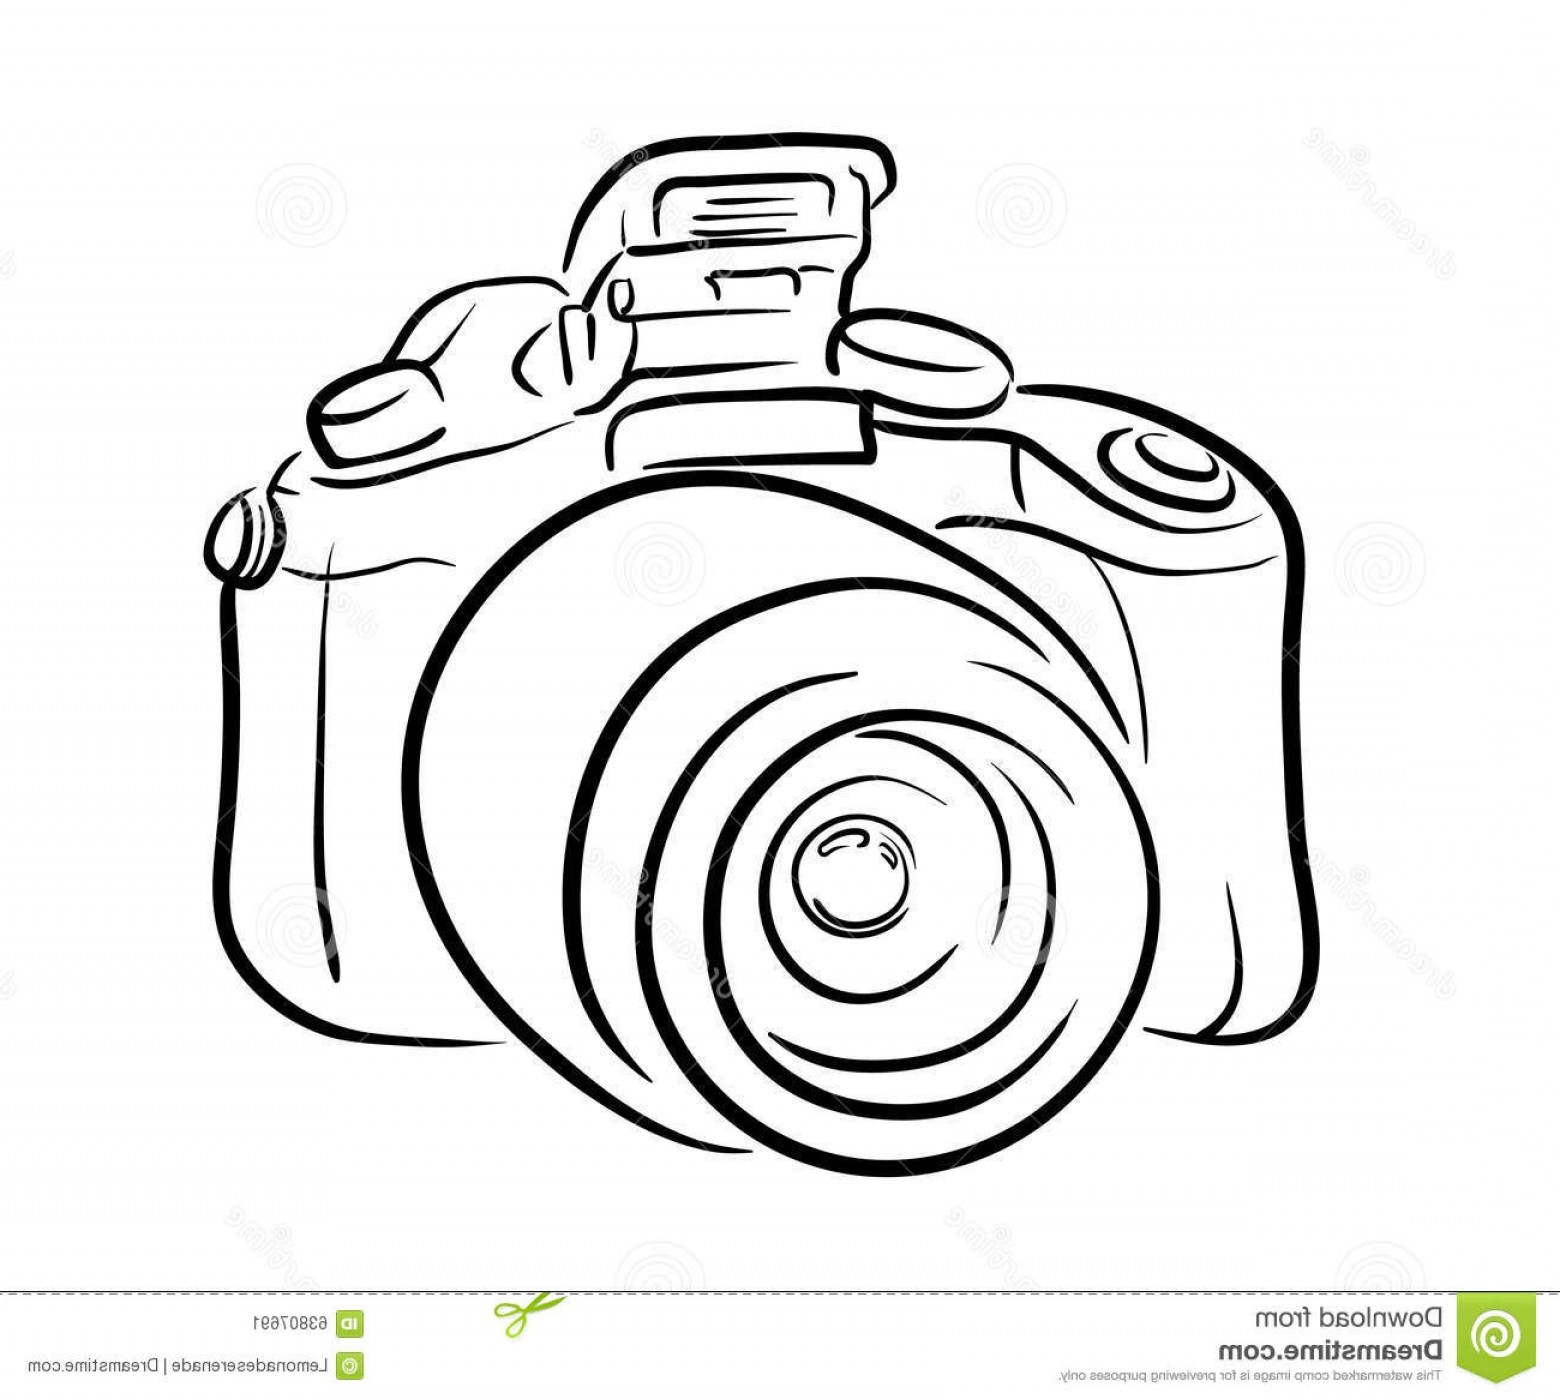 SLR Camera Vector: Stock Illustration Dslr Camera Line Art Hand Drawn Vector Illustration Perfect Company Logo Photography Projects Illustration Image